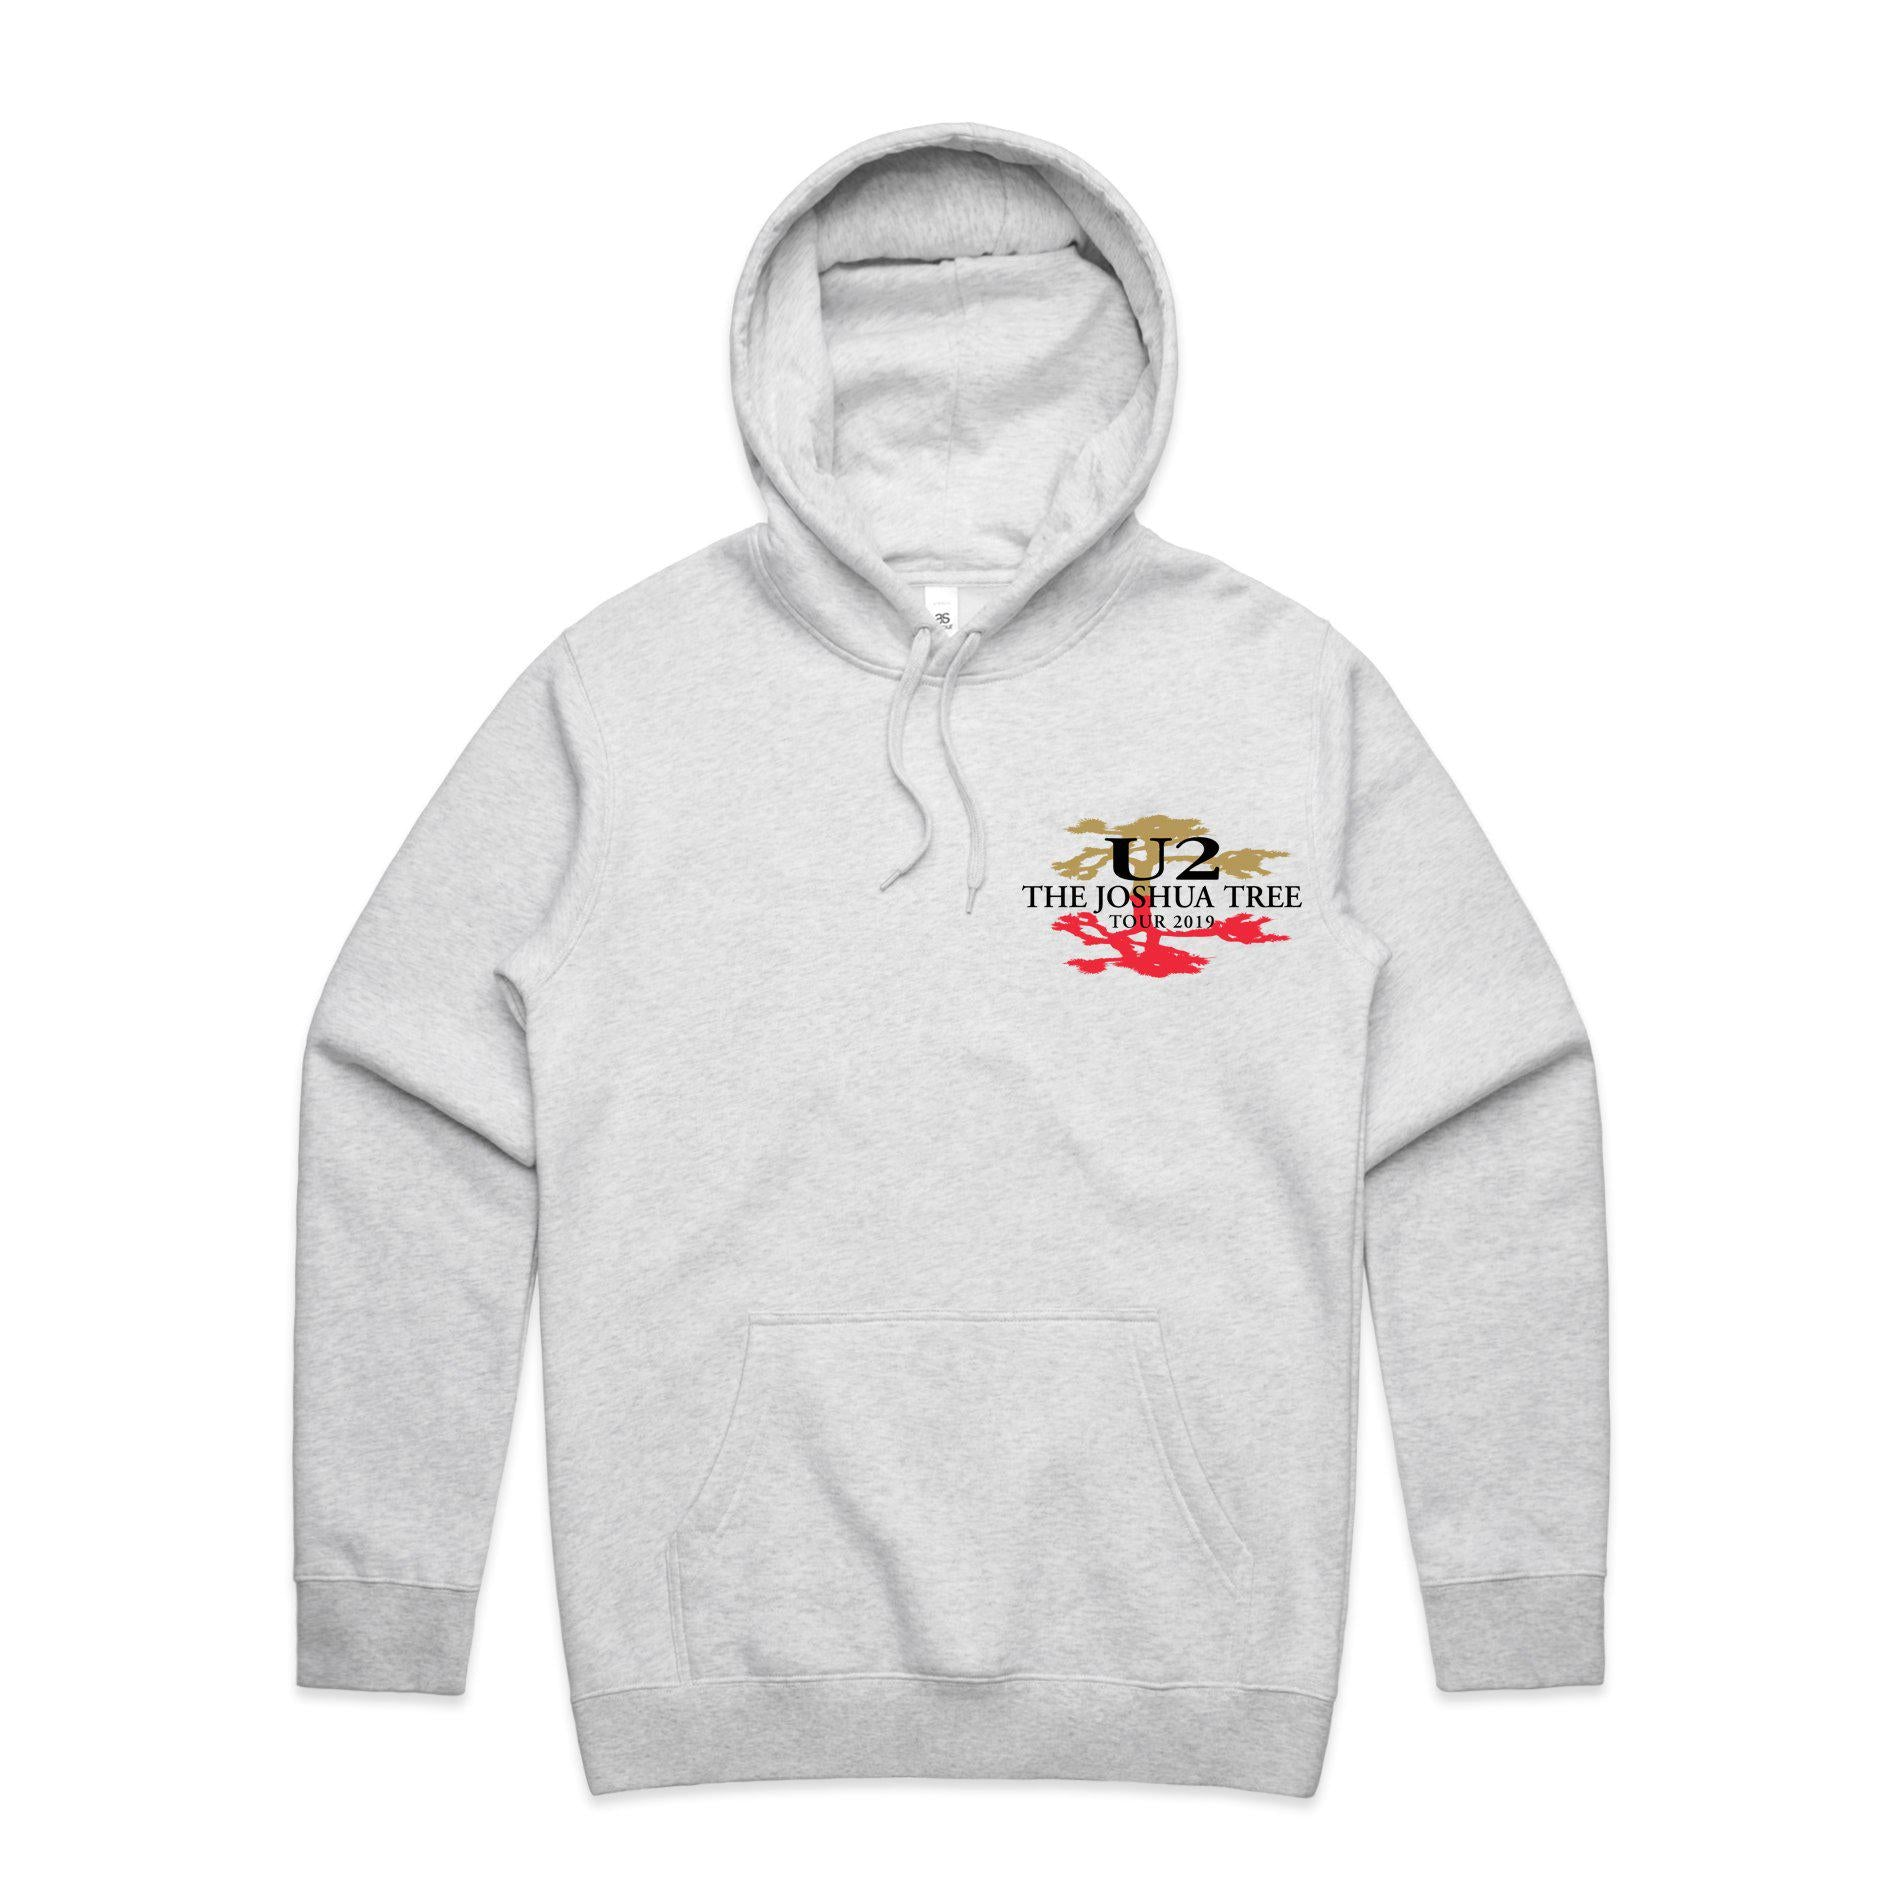 Joshua Tree Tour 2019 Hooded Sweatshirt-U2